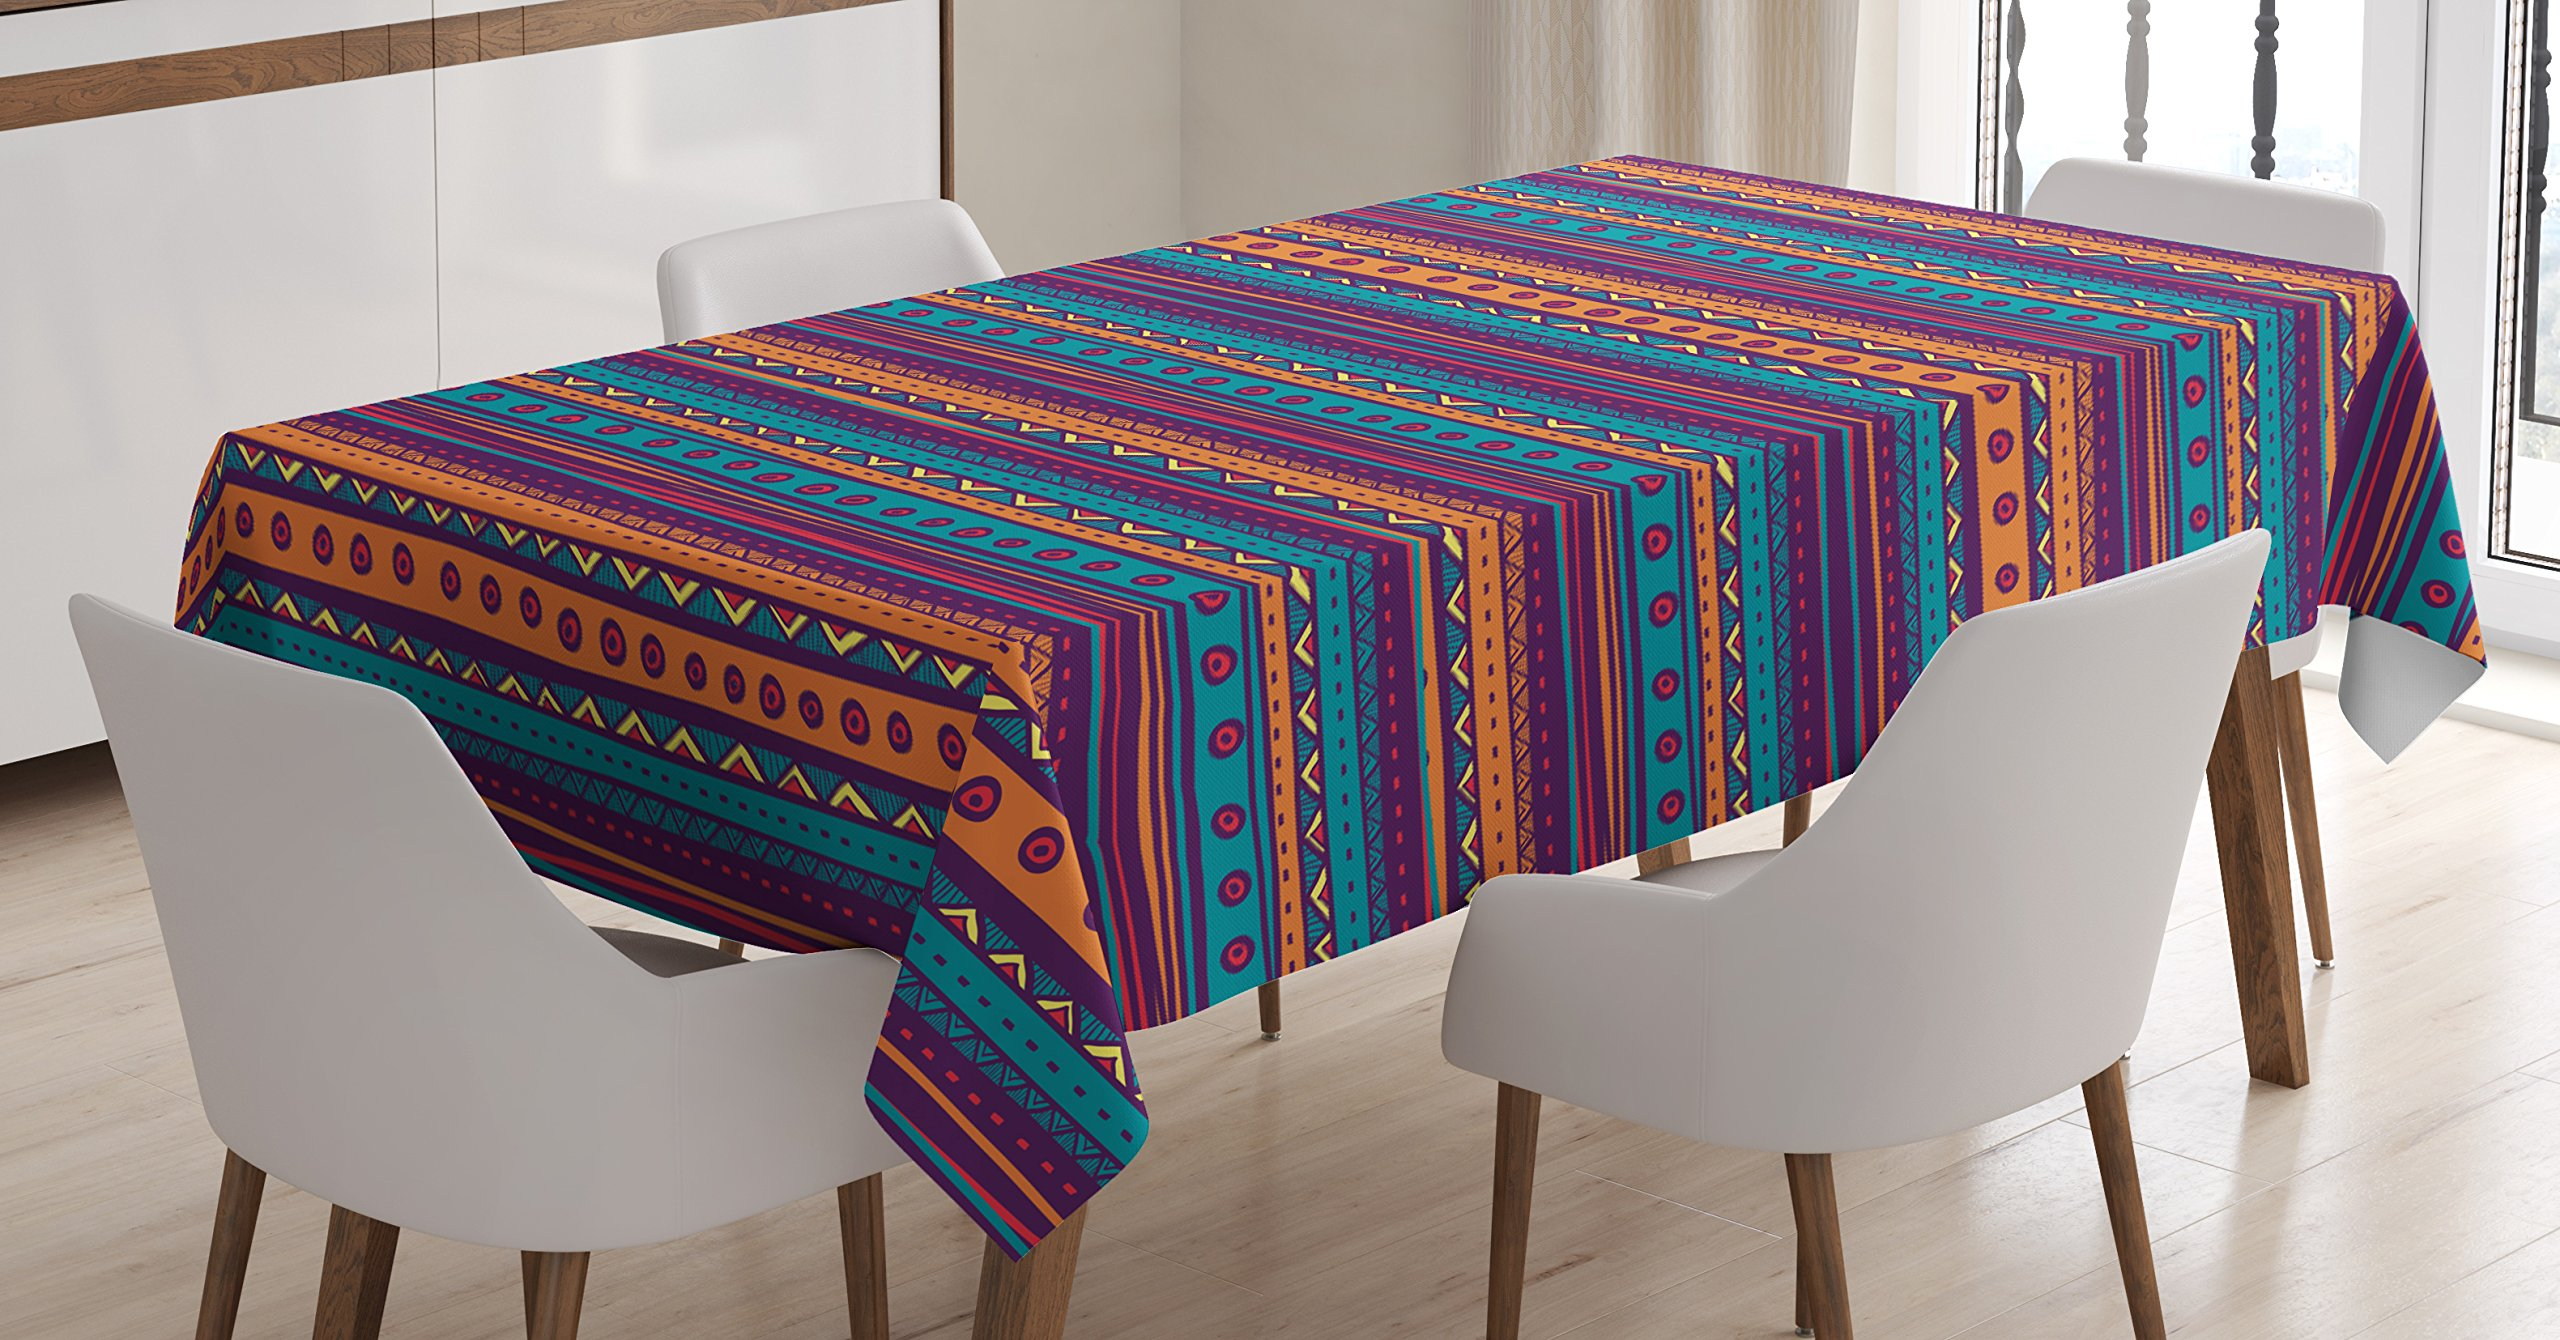 Ambesonne Tribal Tablecloth, Striped Retro Aztec Pattern with Rich Mexican Ethnic Color Folkloric Print, Dining Room Kitchen Rectangular Table Cover, 60 W X 84 L inches, Teal Plum and Orange